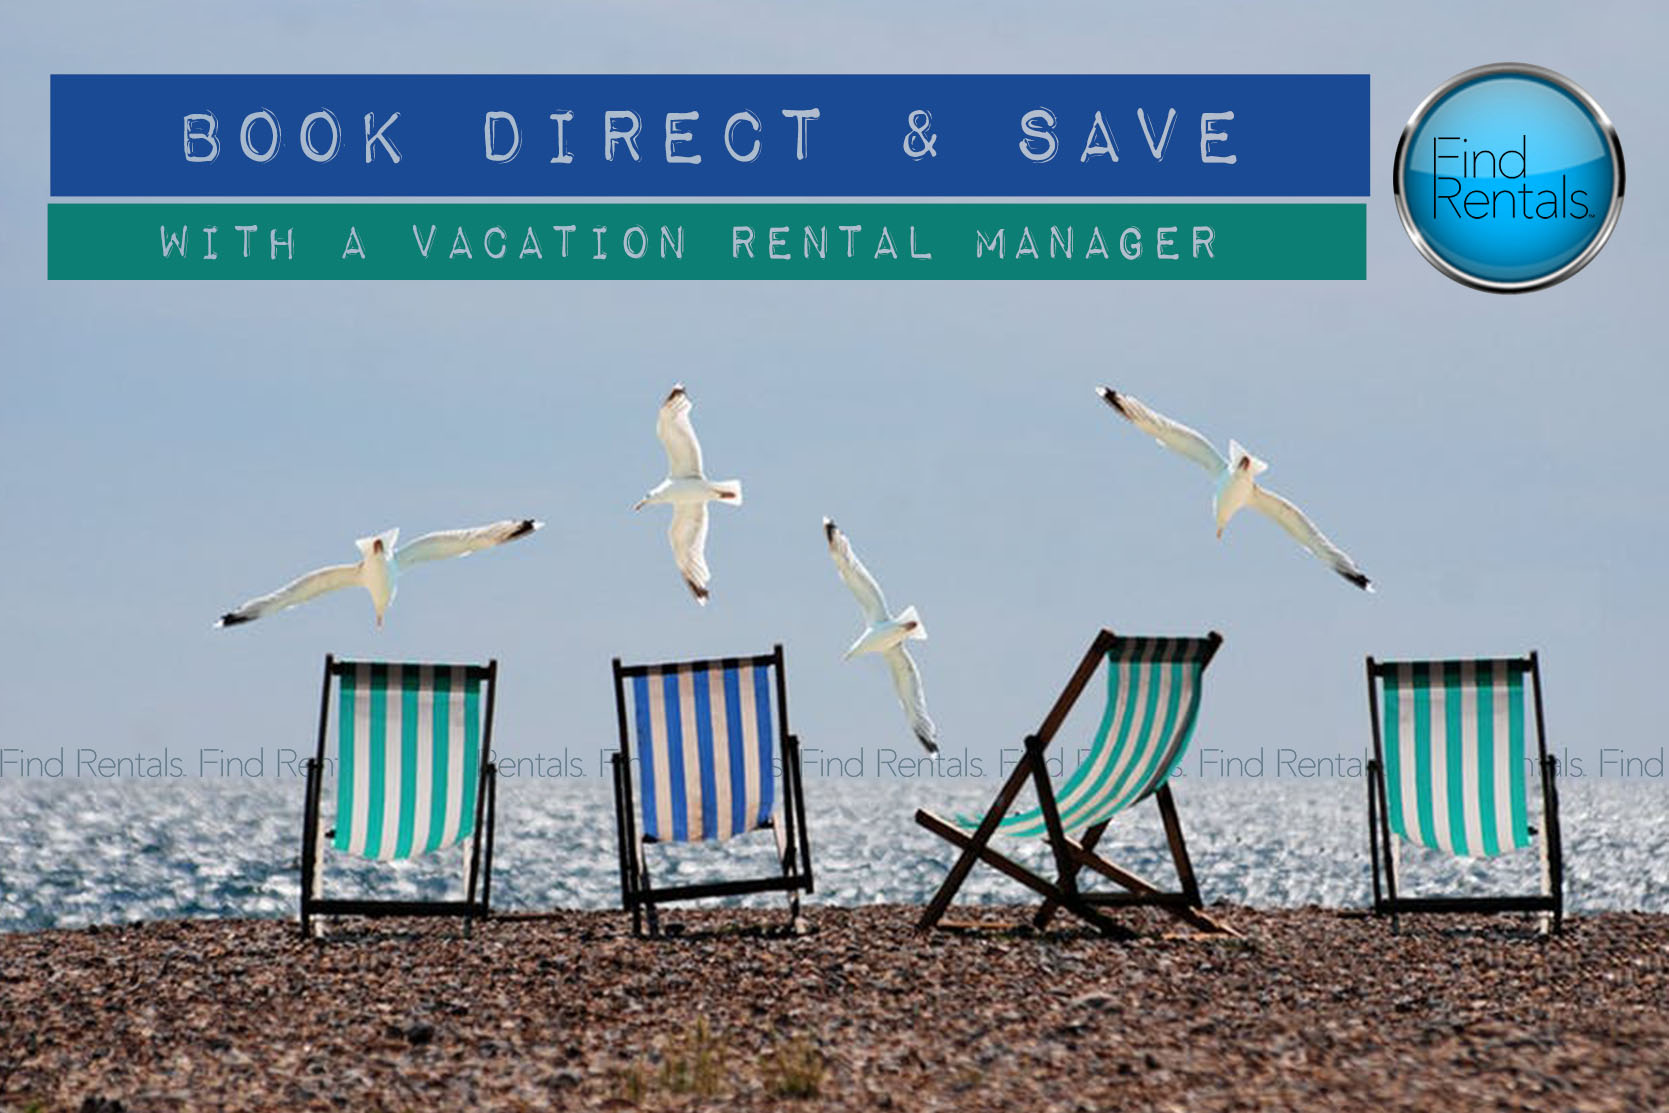 AMI vacation rental managers